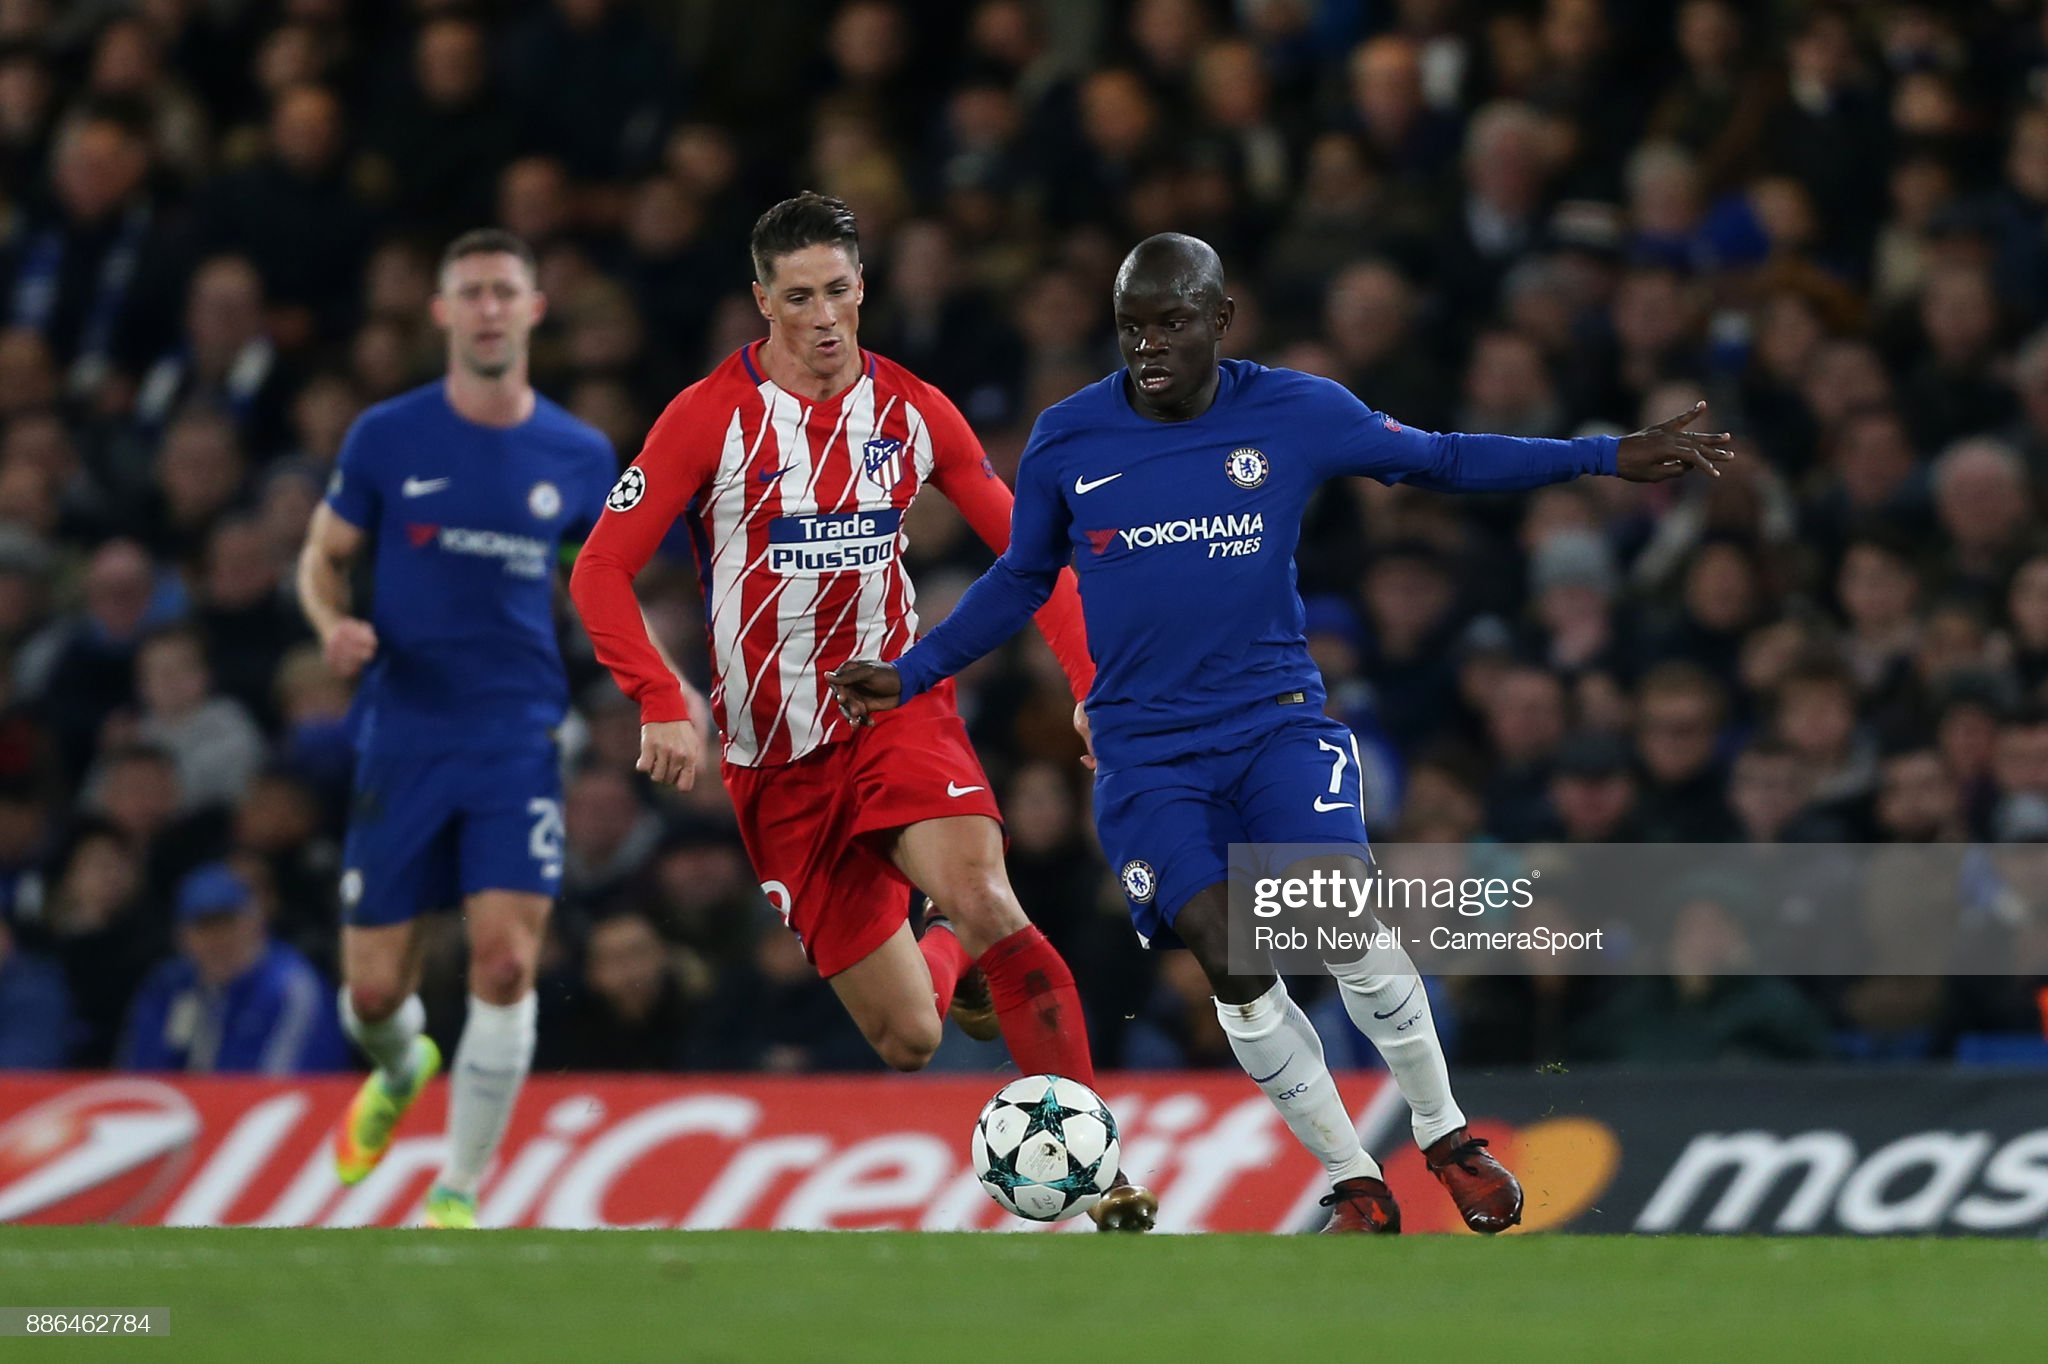 Atletico Madrid vs Chelsea preview, prediction and odds